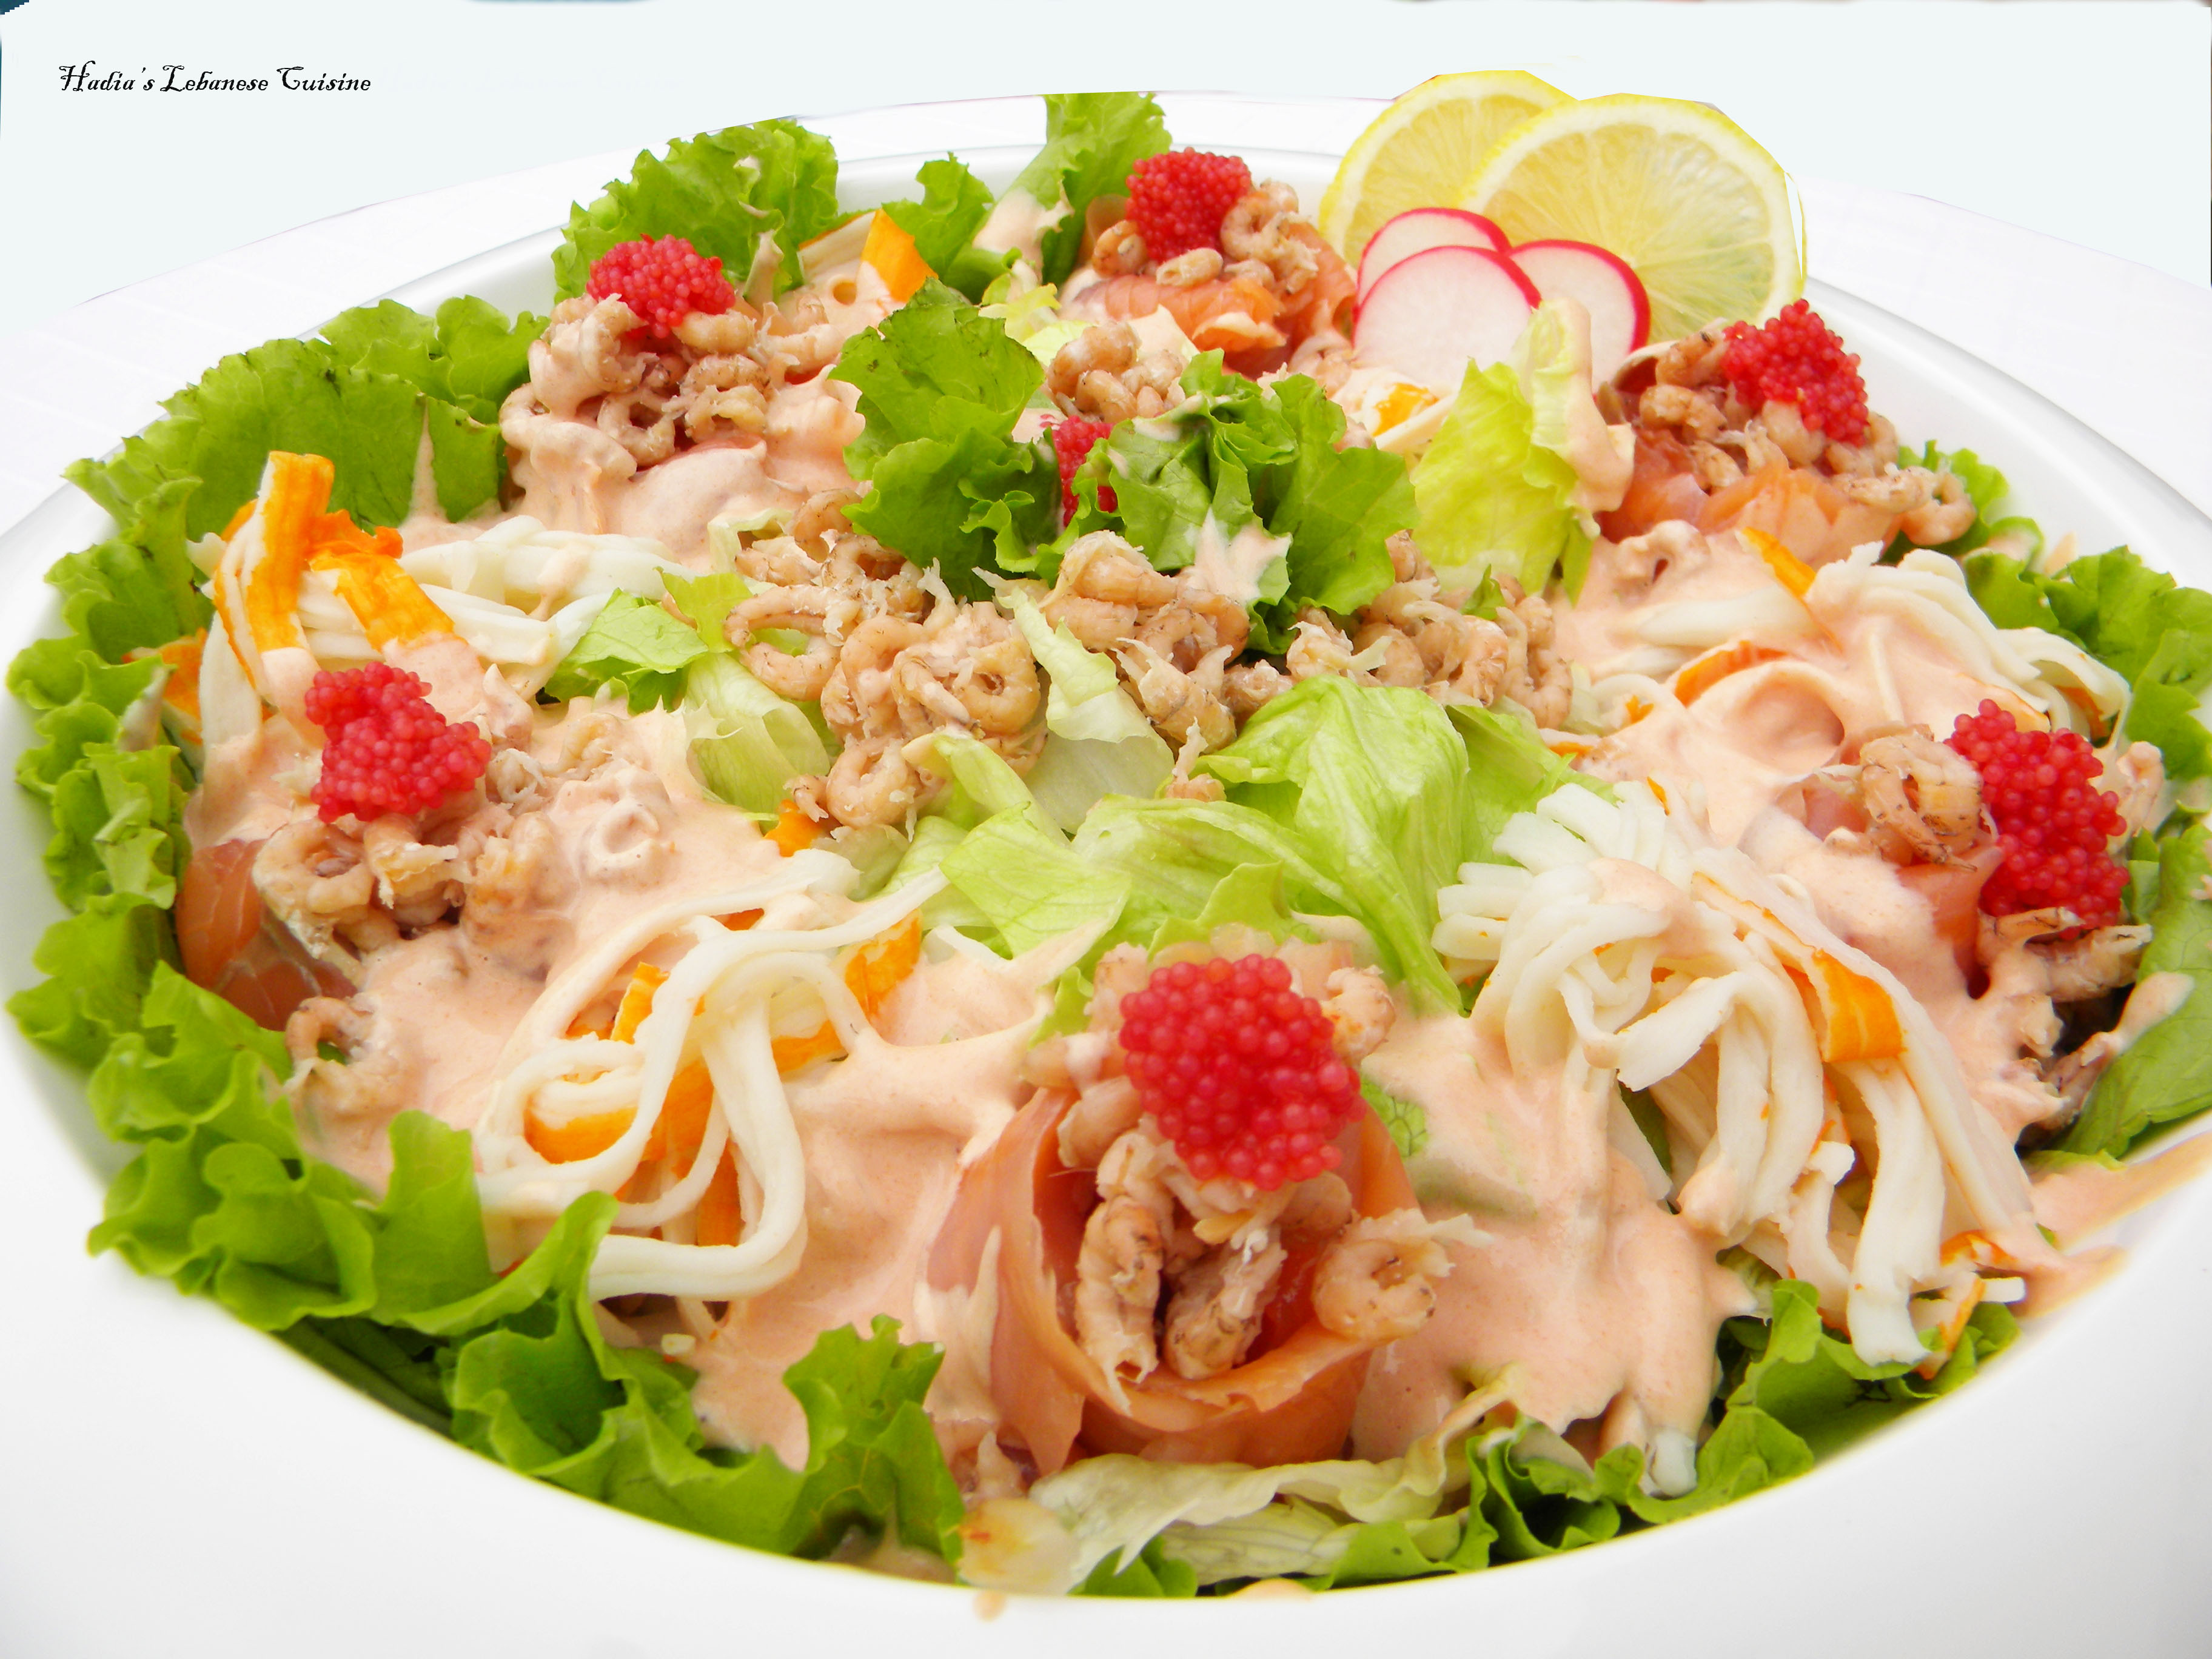 Seafood Salad A Luxury Salad Packed With Proteins And A